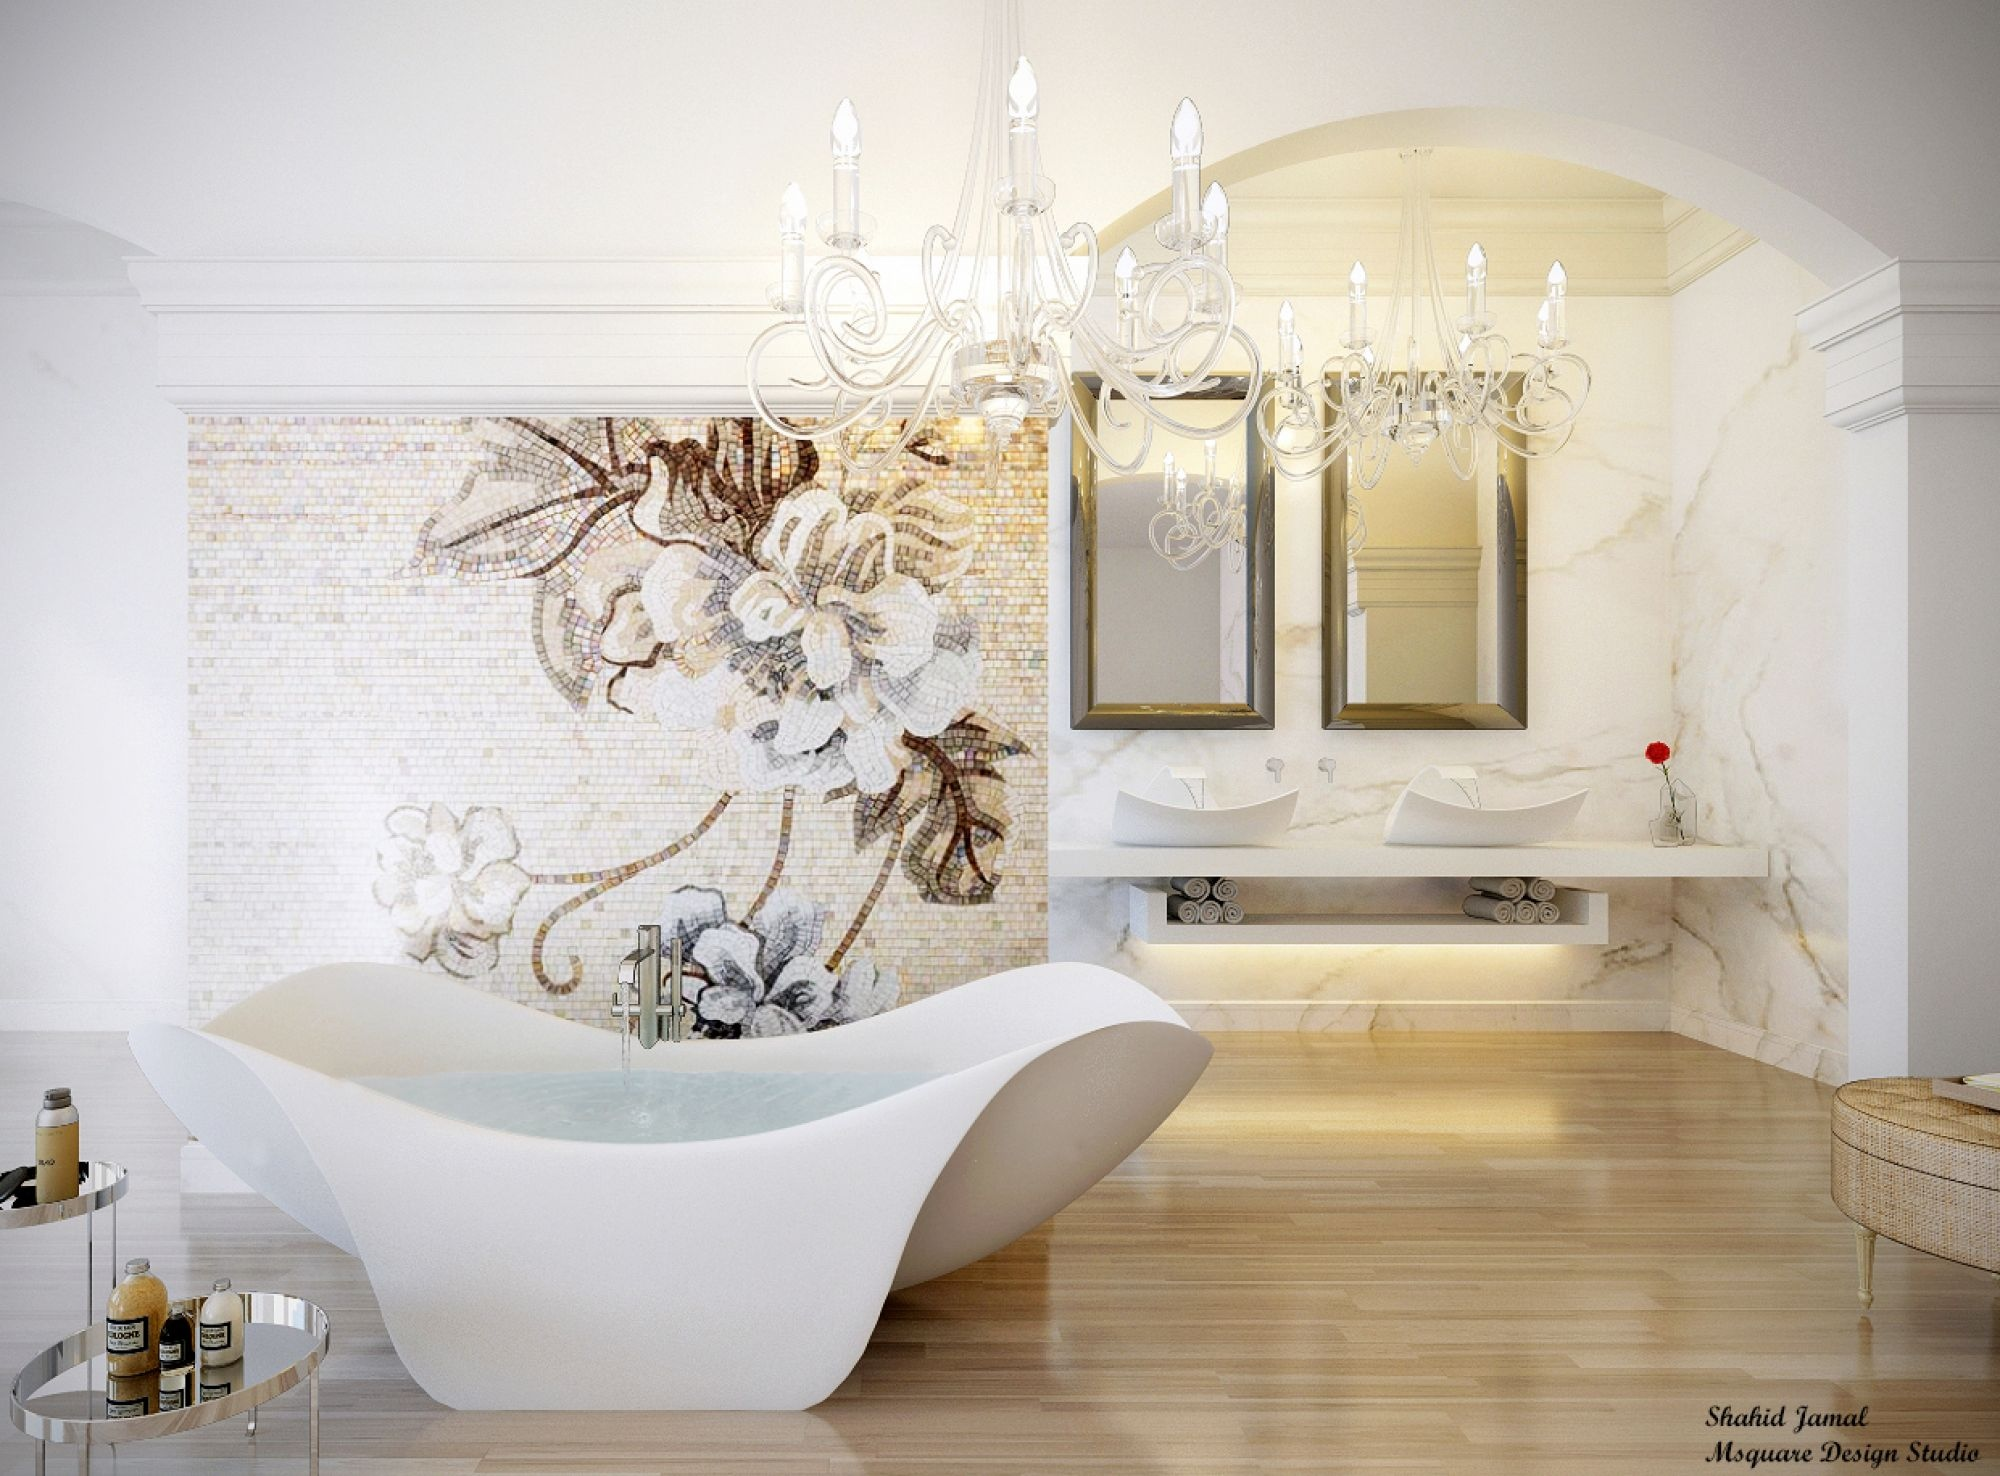 Ultra luxury bathroom inspiration for Bathroom decor designs